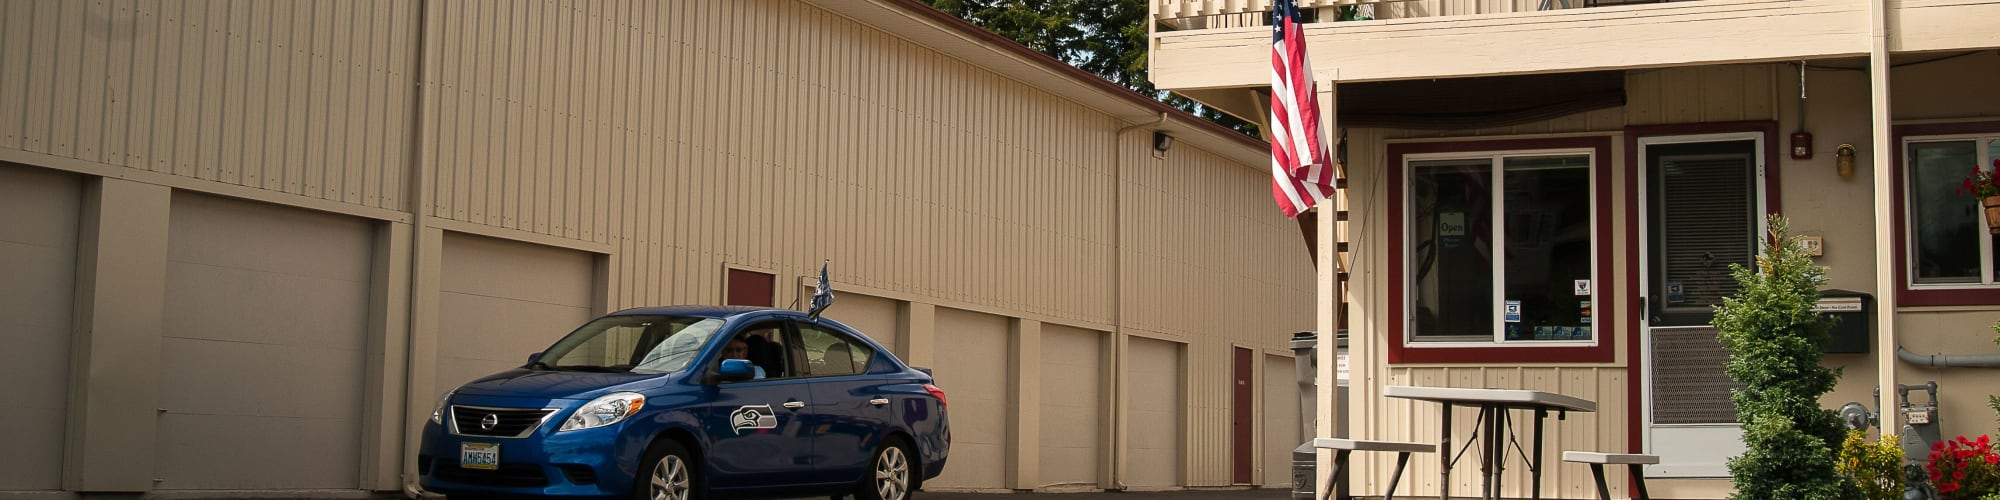 Self storage in Silverdale WA